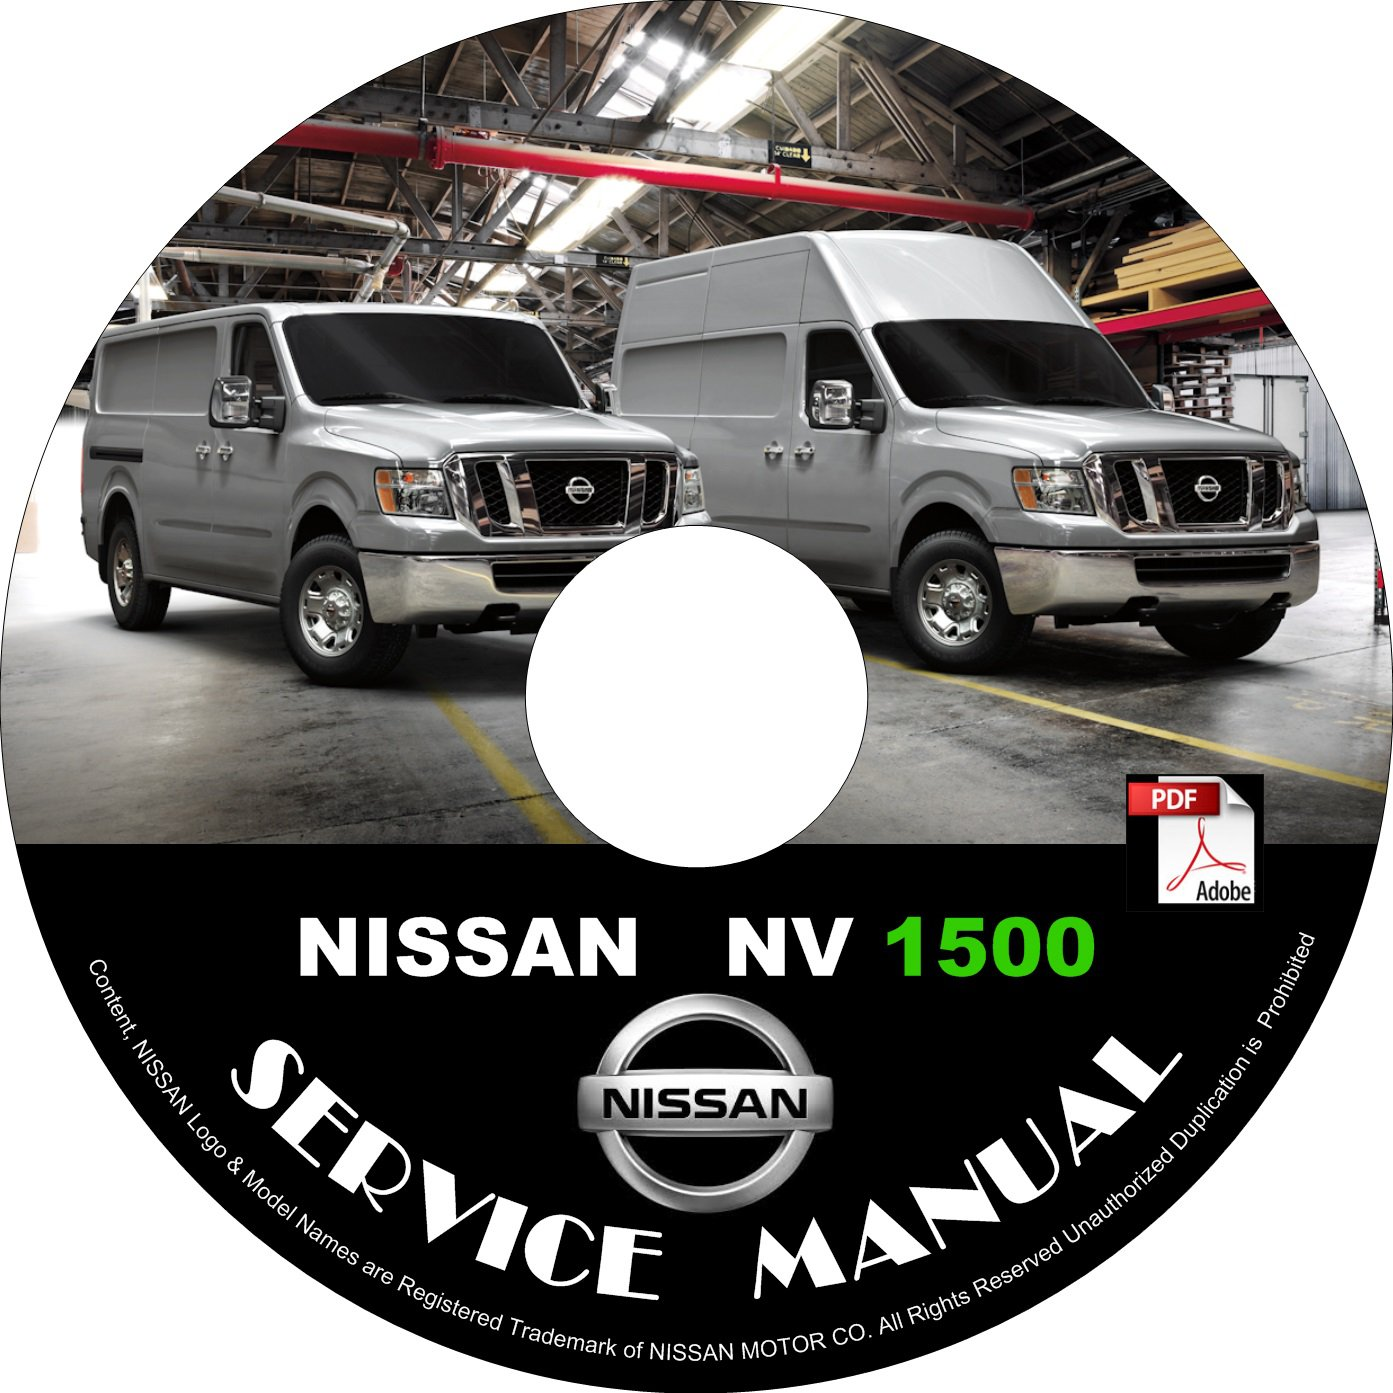 2012 Nissan NV 1500 Factory Service Repair Shop Manual on CD Fix Repair Rebuild '12 Workshop Guide